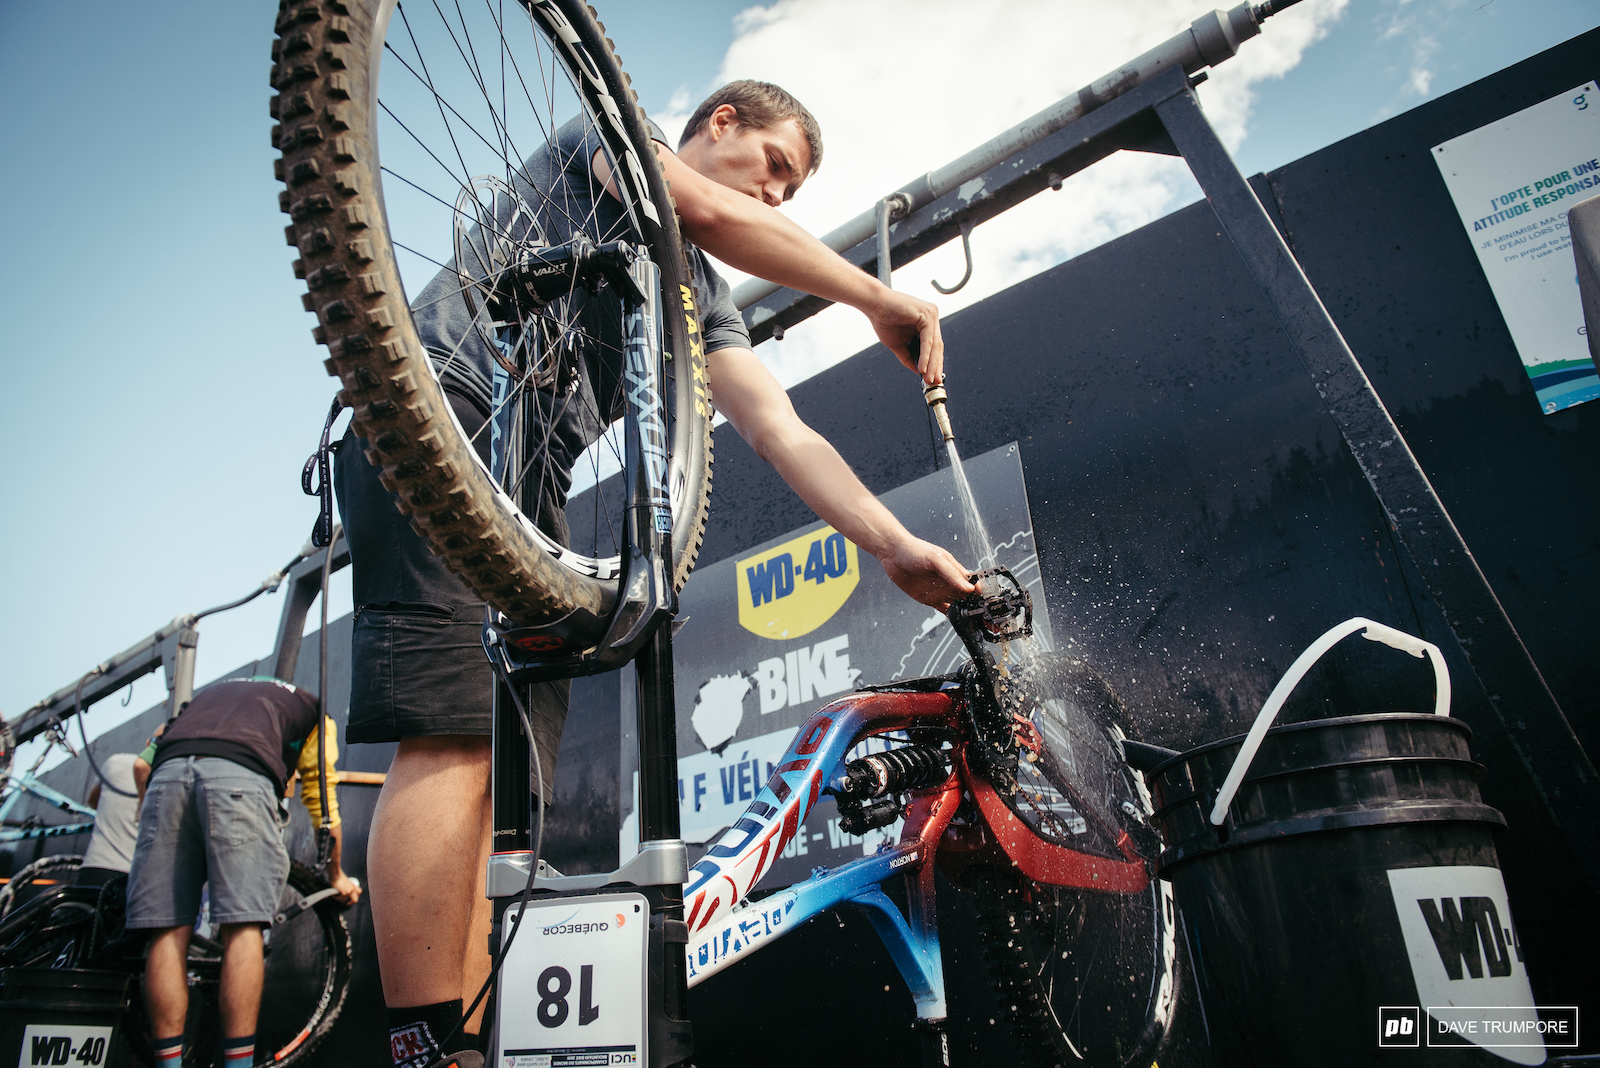 Finka bike prep and cleaning before the biggest race of the year